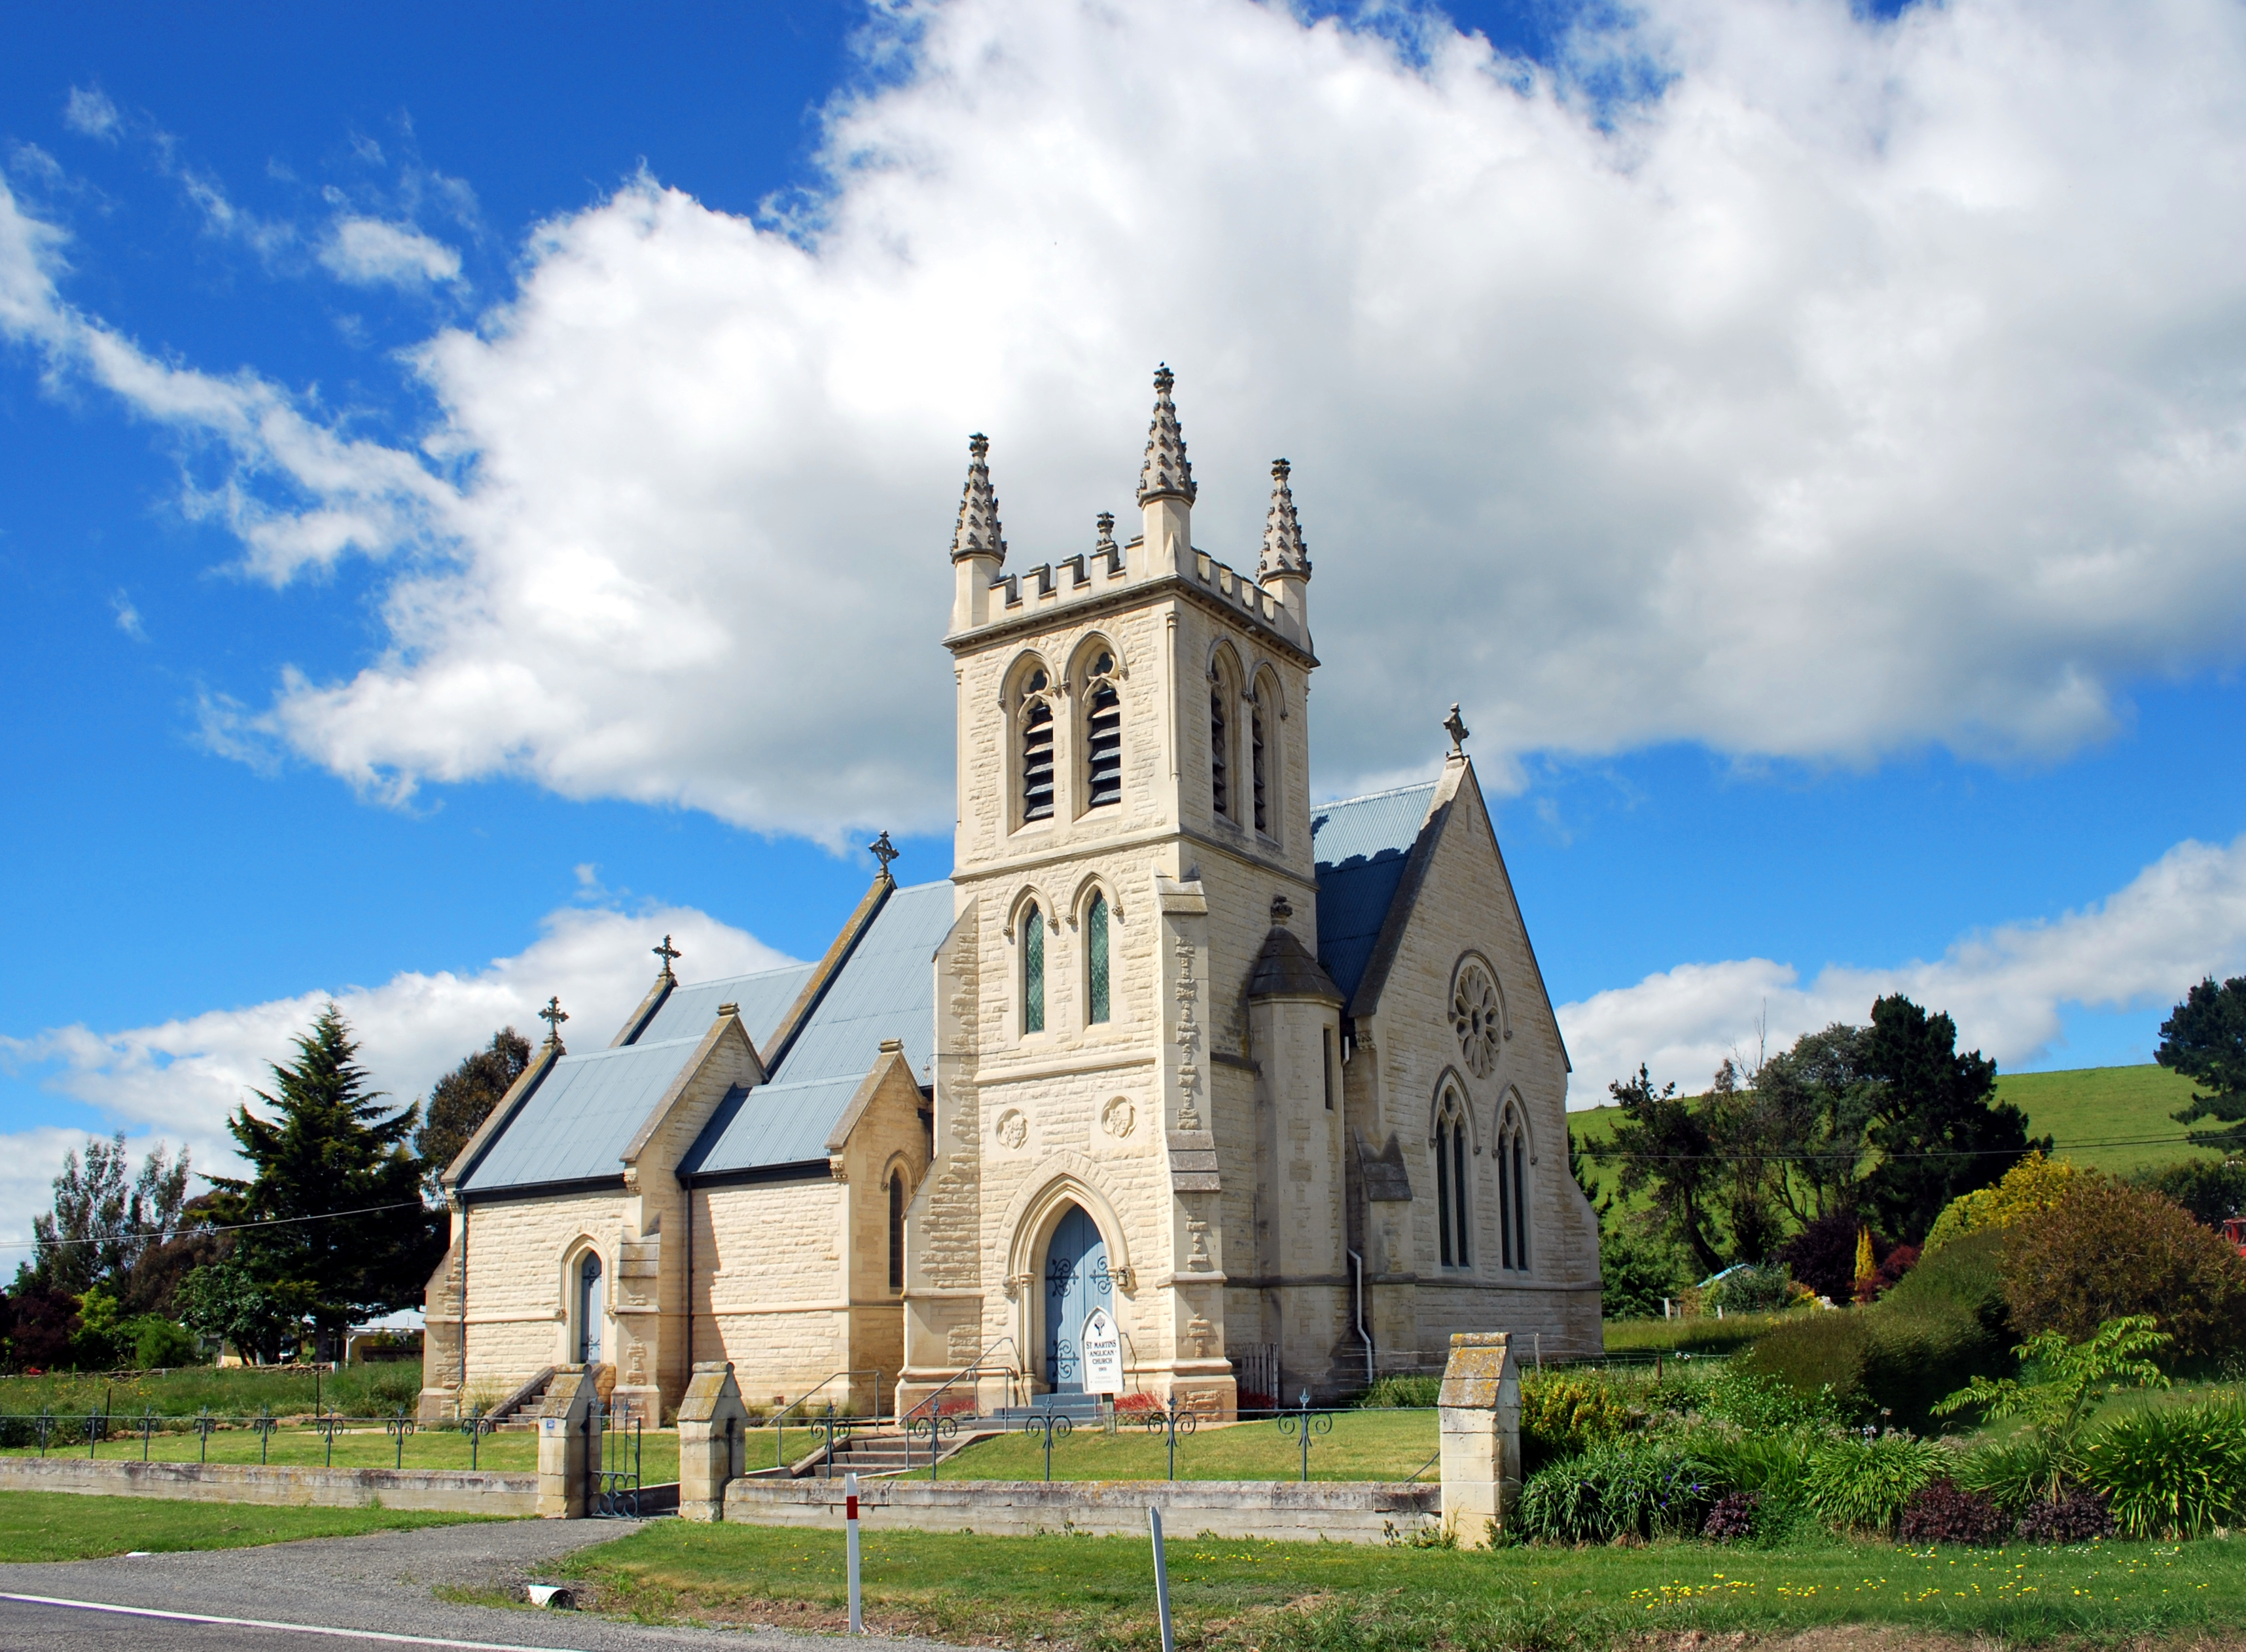 Duntroon_Anglican_Church_003.JPG